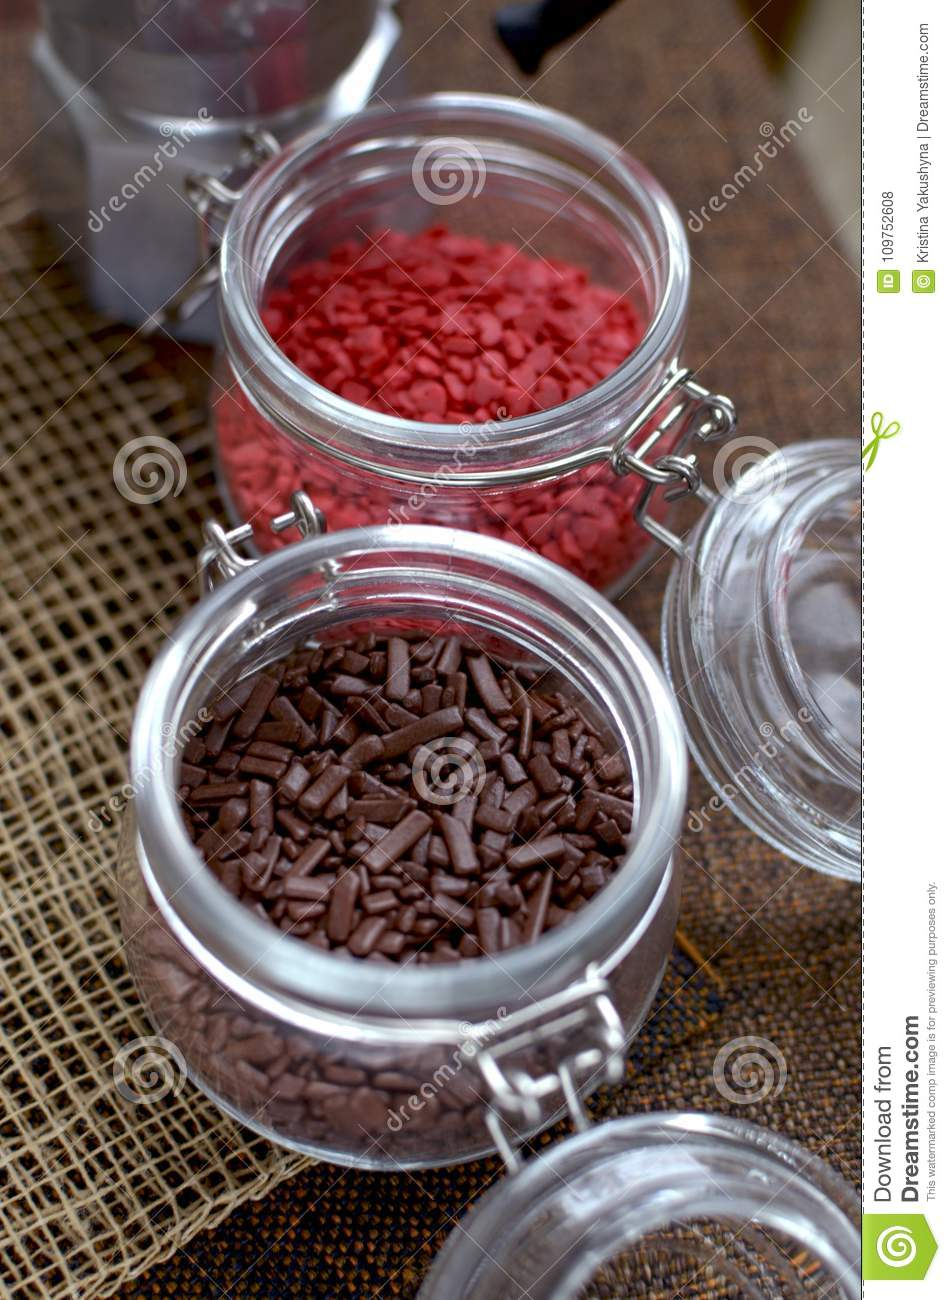 Two jars with sugar confectionery additives